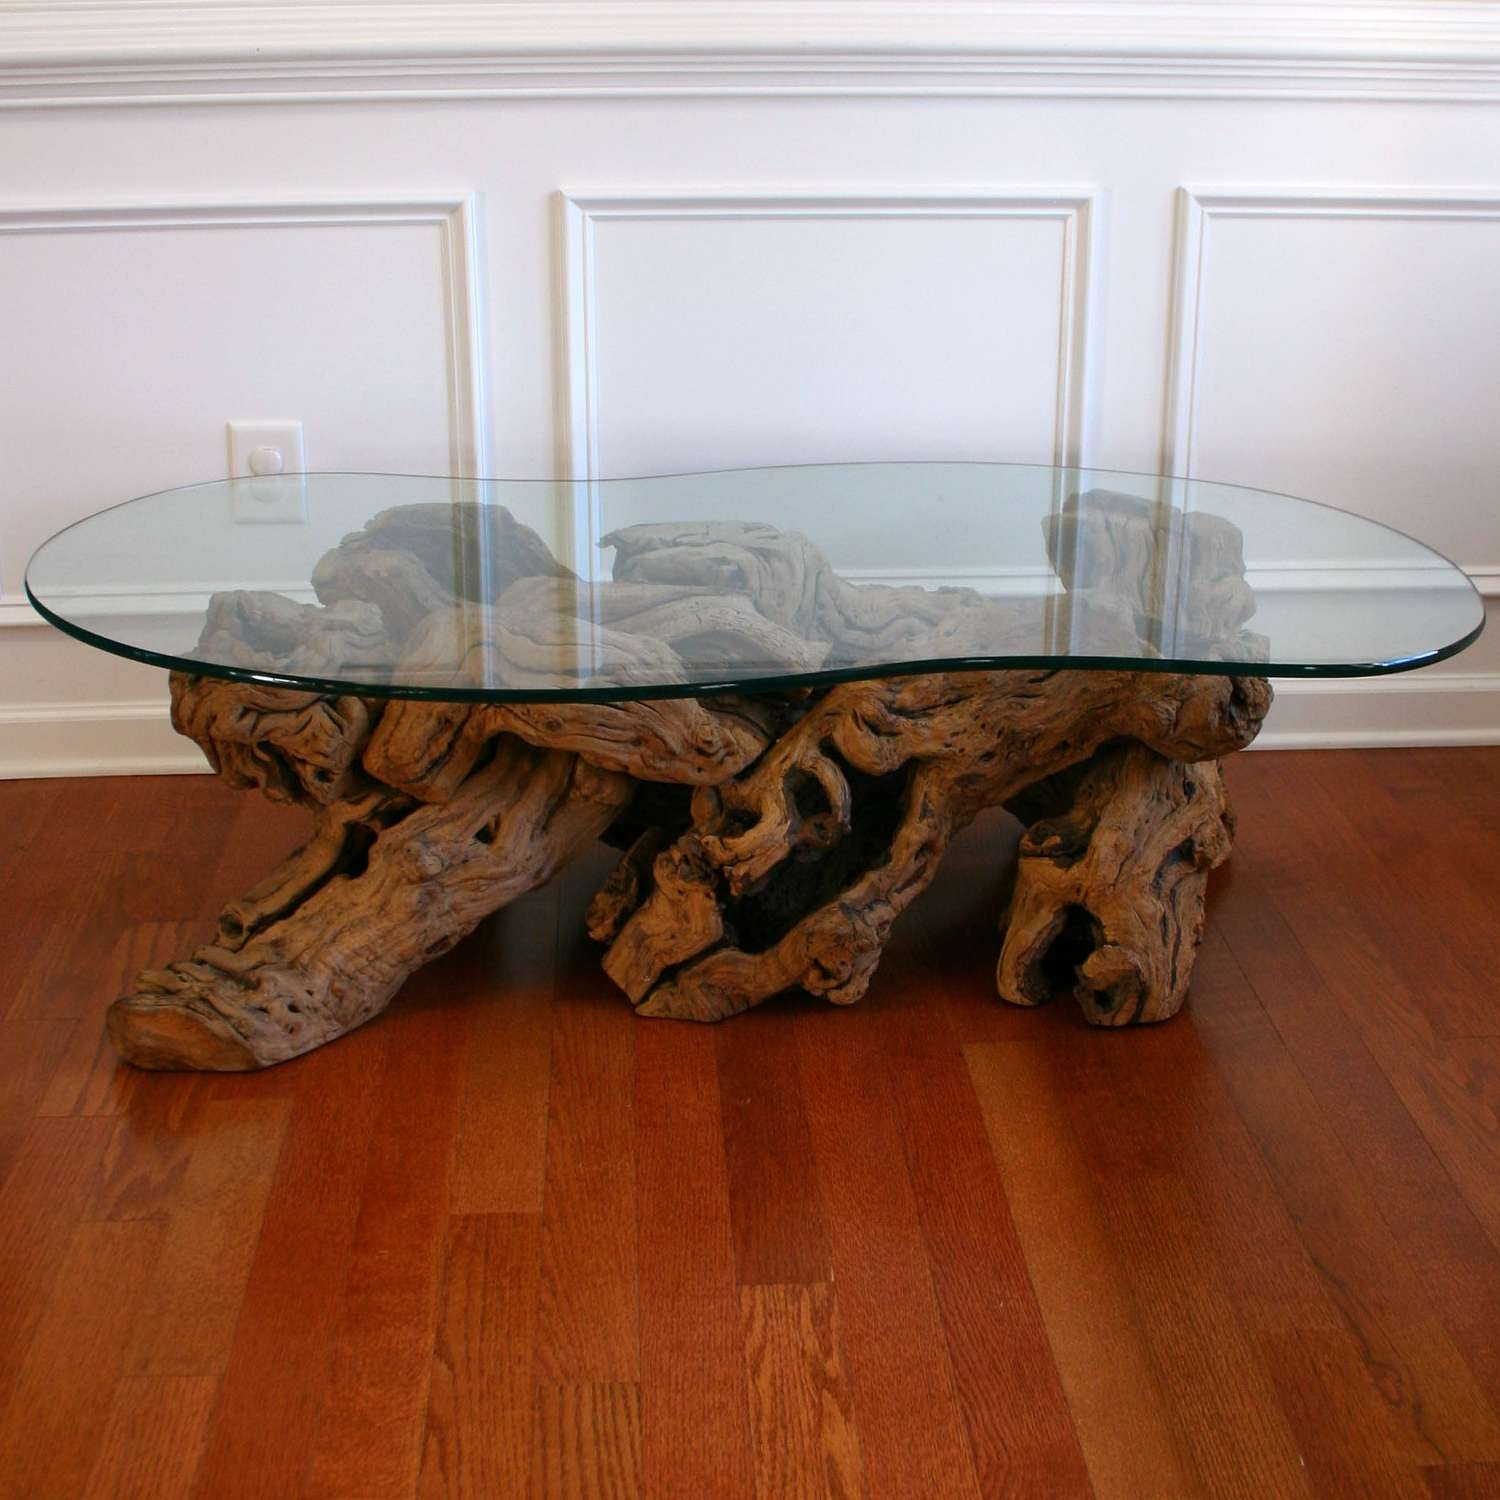 Old Crate And Barrel Driftwood Coffee Table With Glass Top For Inside Most Recently Released White Wood And Glass Coffee Tables (View 15 of 20)